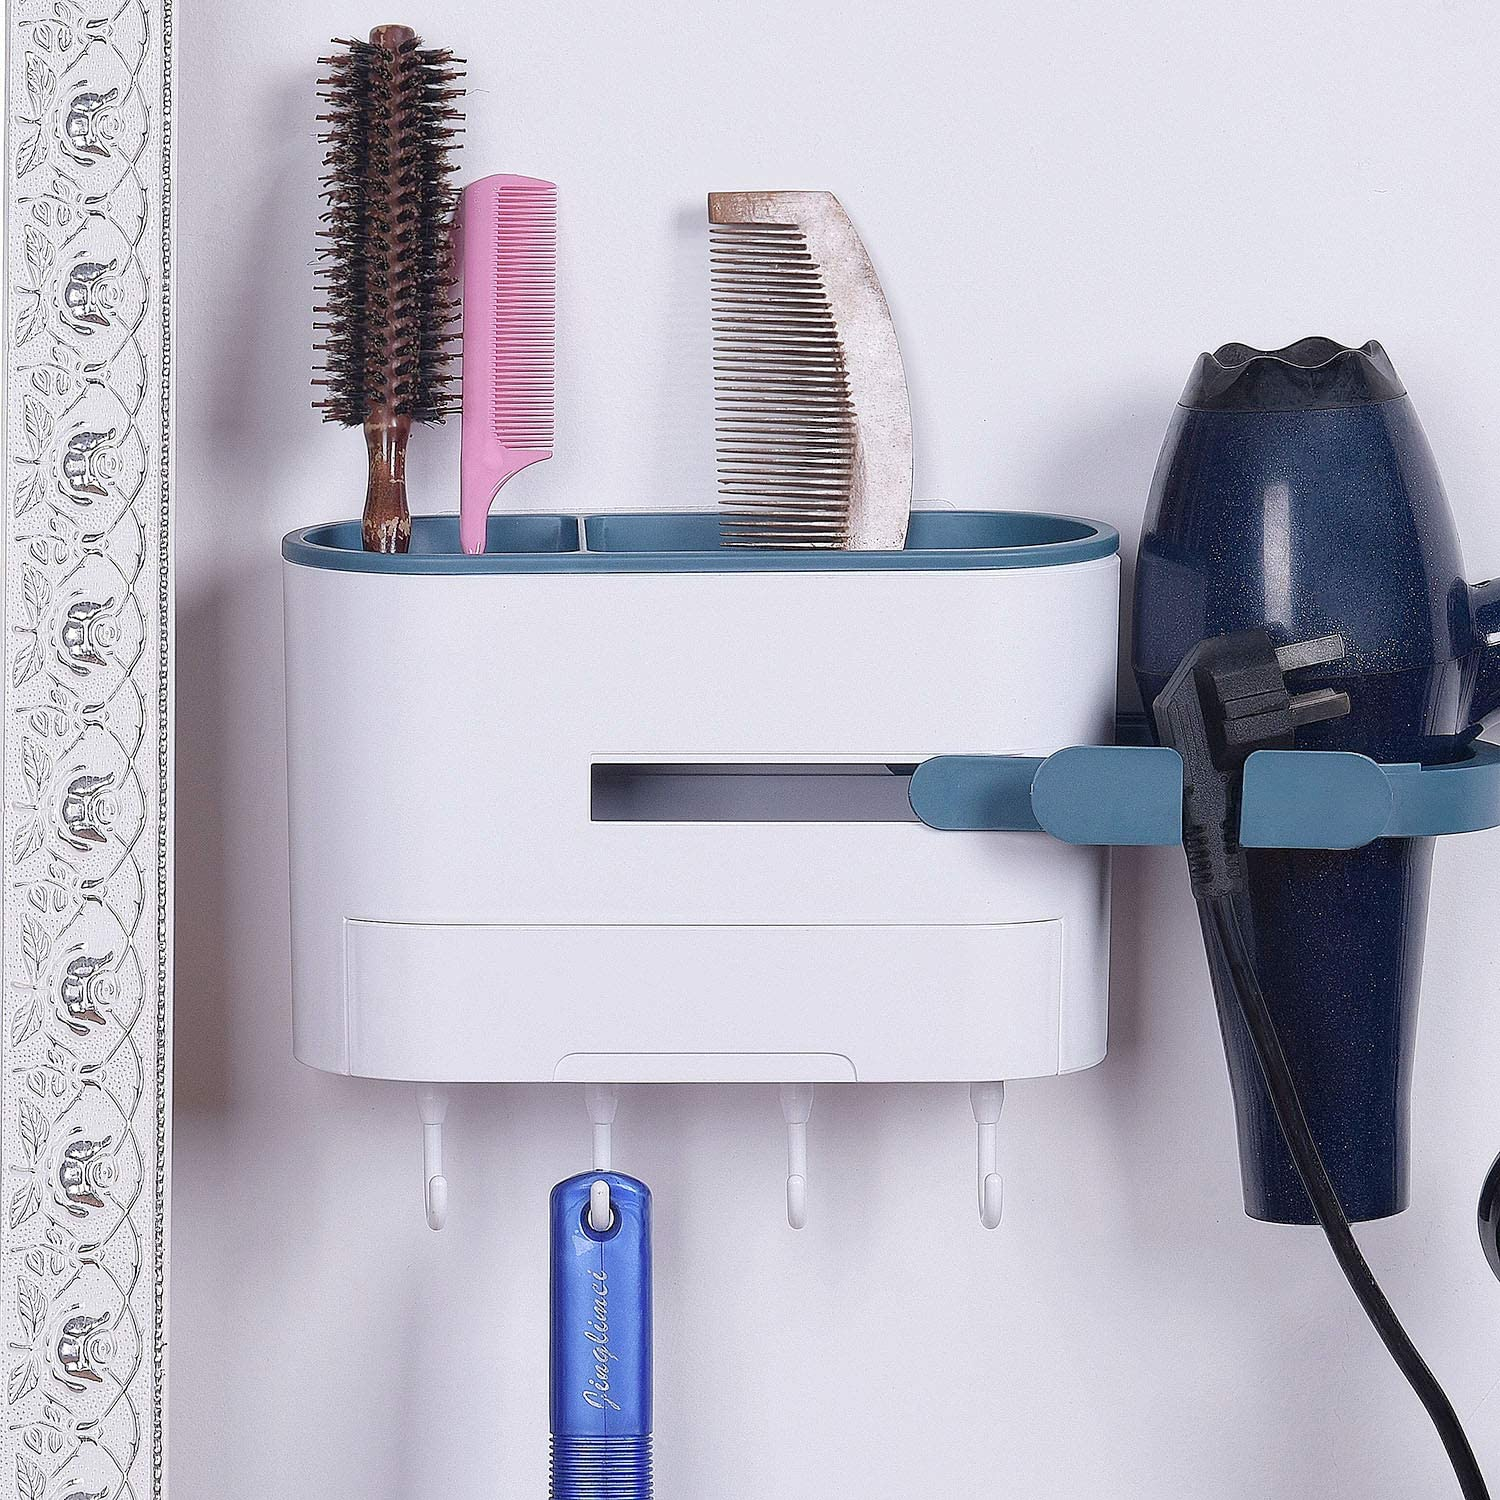 Wall Mounted Hair Dryer Holder, No Drilling, Adhesive Styling Tool Organizer Multi-Functional Space Saving Storage Rack for Bathroom, with Drawer and 4 Hooks (Dark Blue)